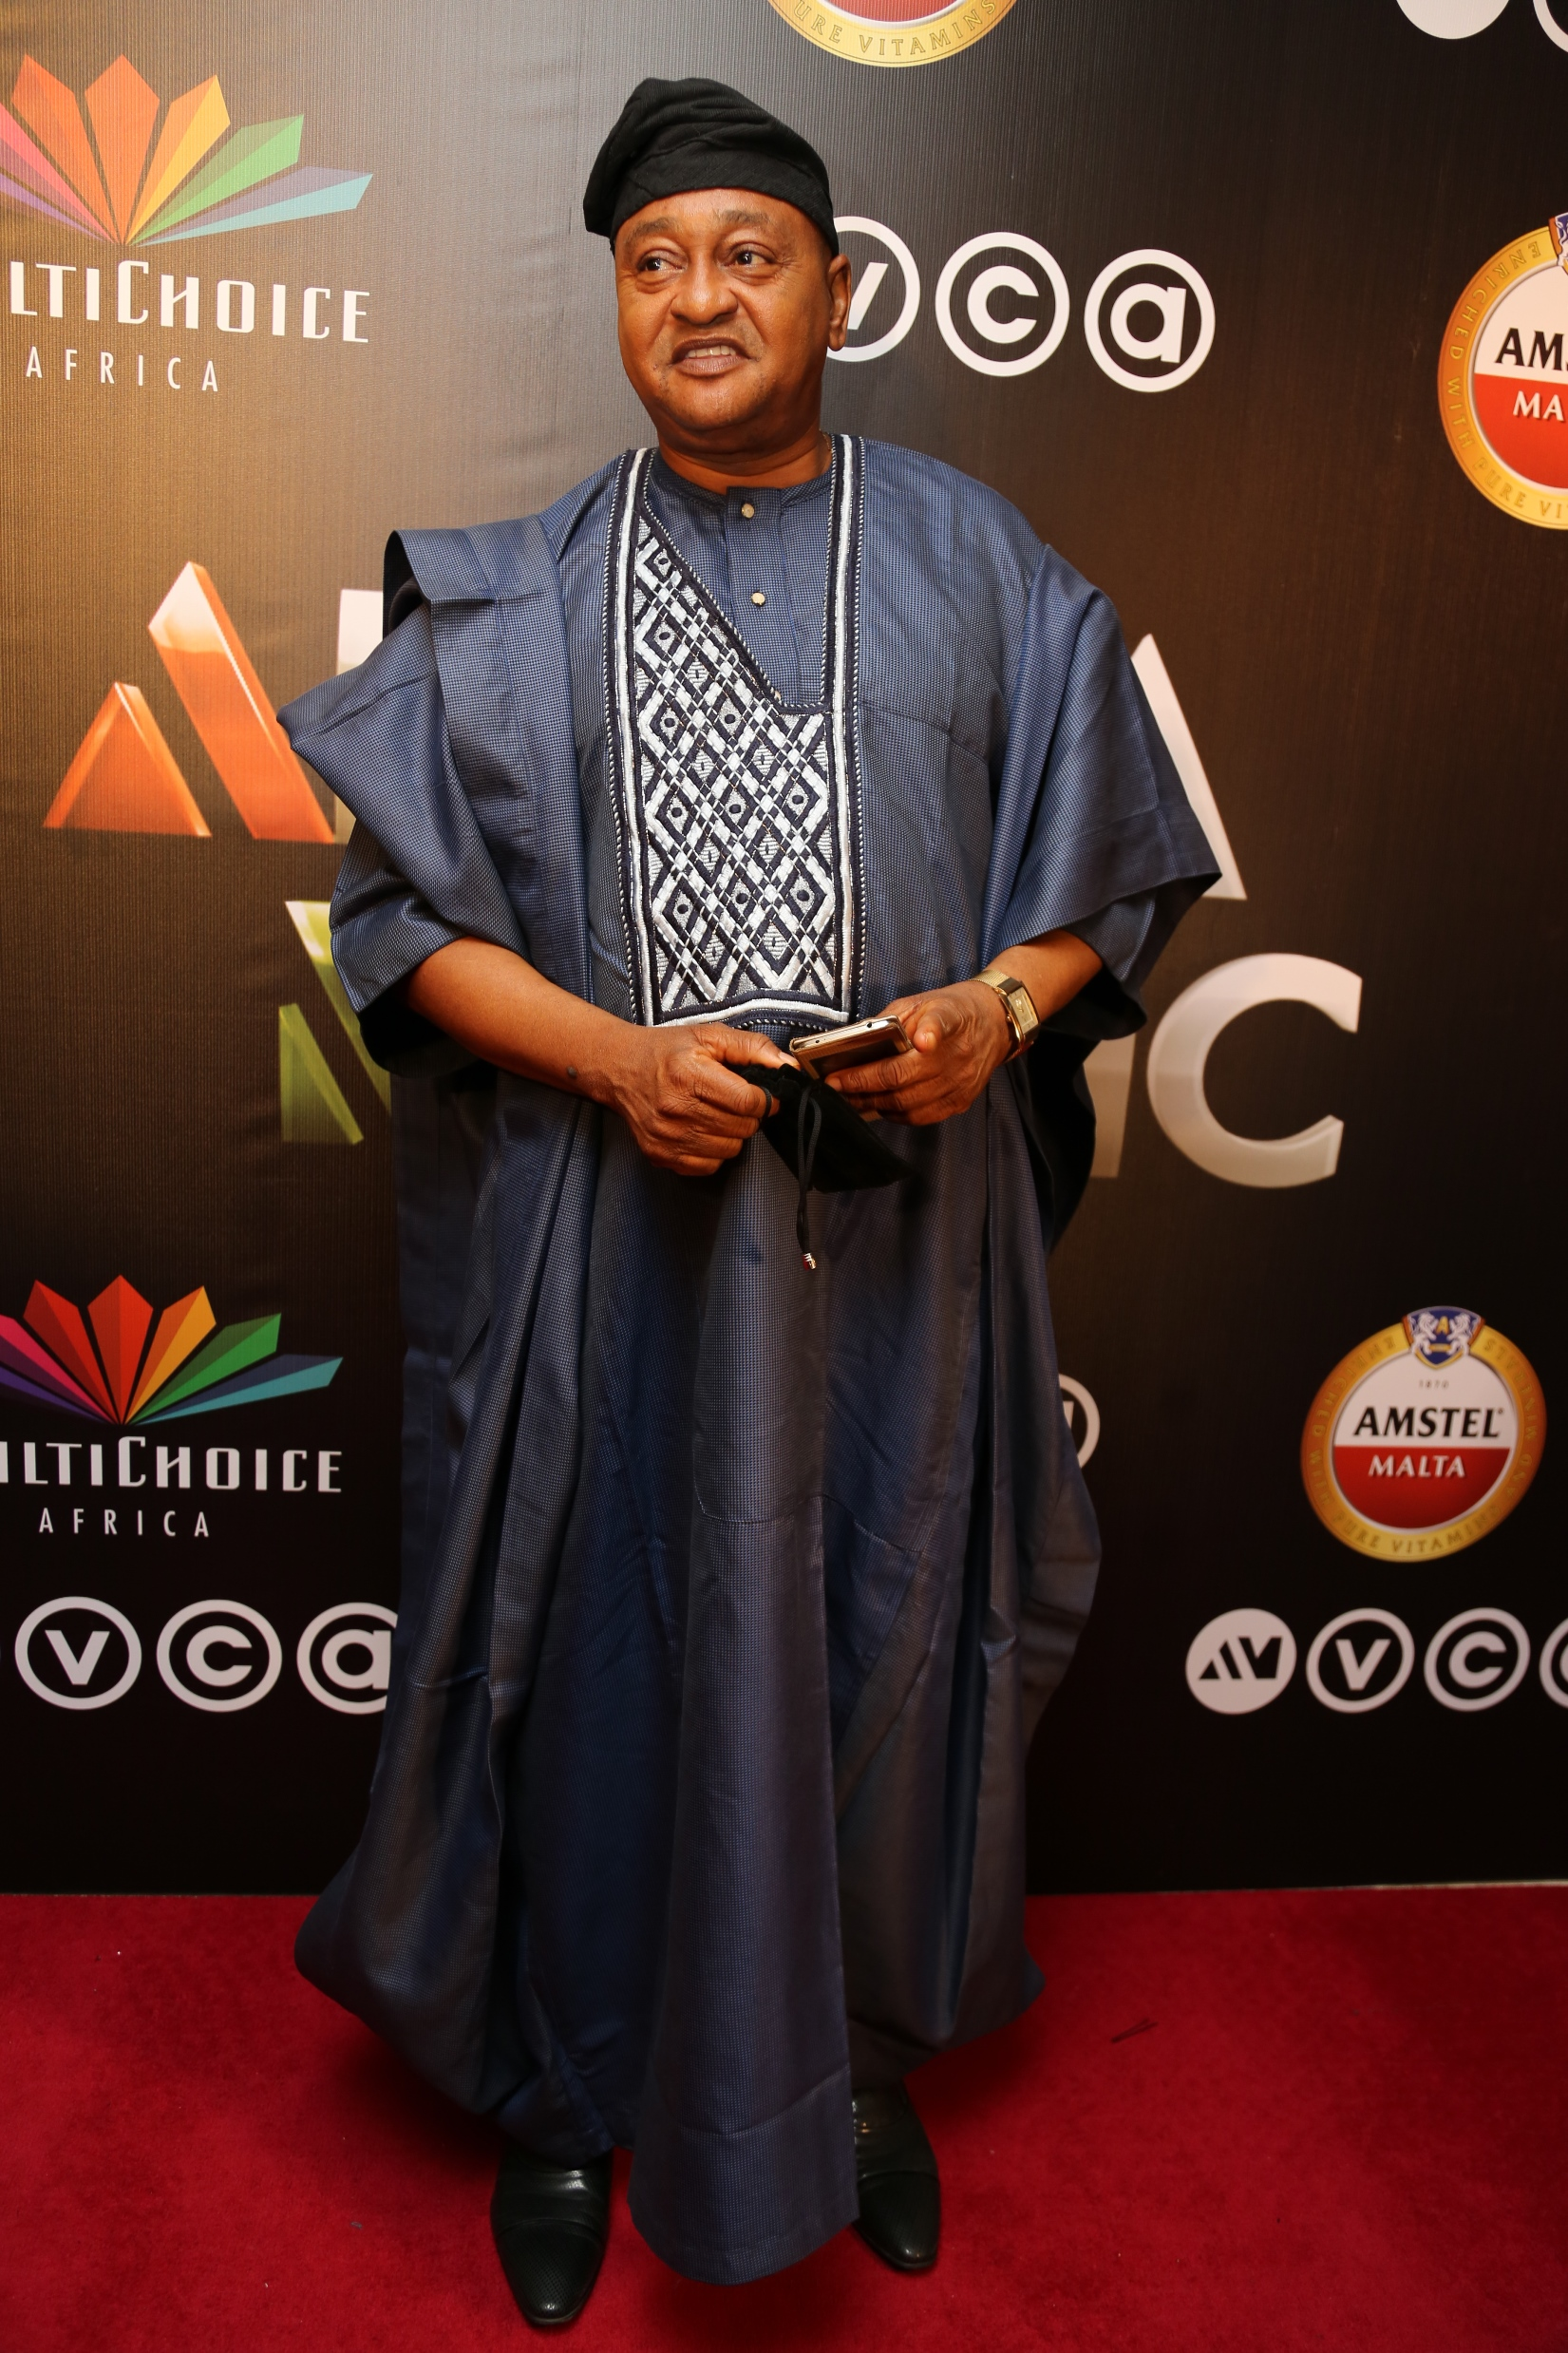 Chinese Movies Will Destroy Our Culture - Says Nollywood Actor, Jide Kosoko